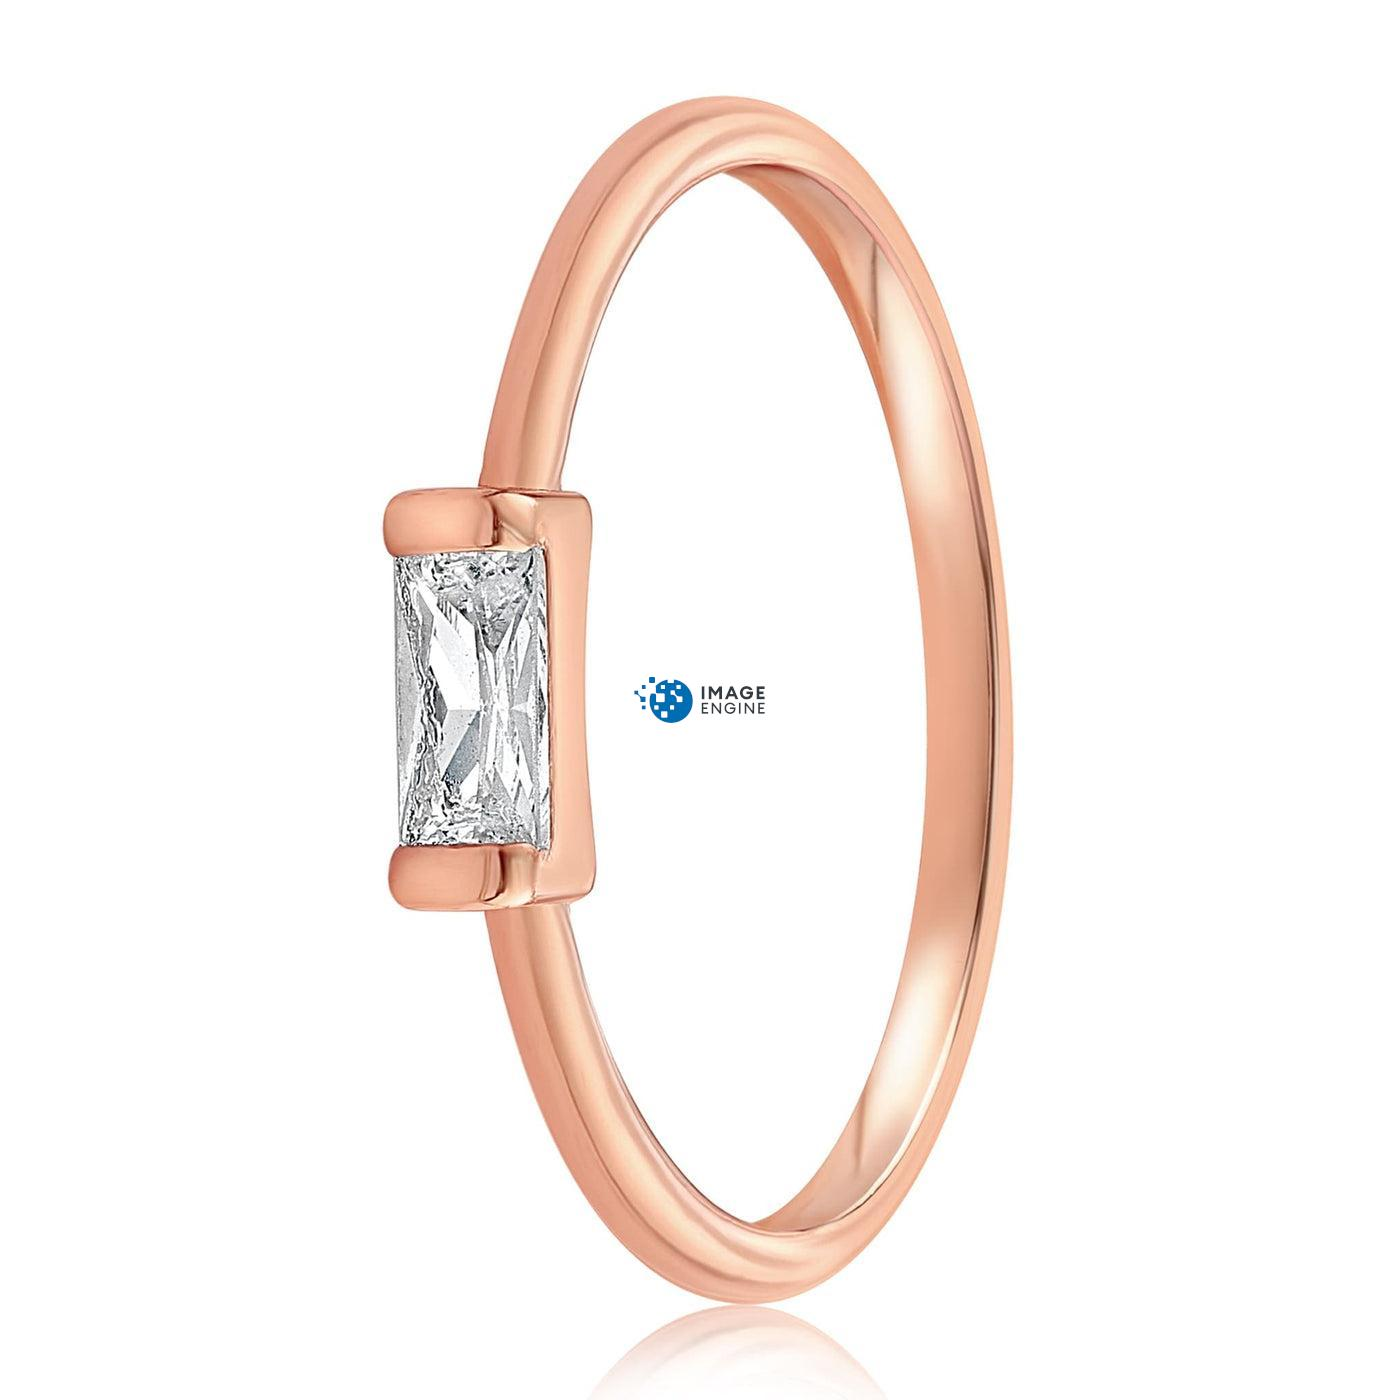 Moonie Glass Geometric Ring - Front View Facing Down - 18K Rose Gold Vermeil